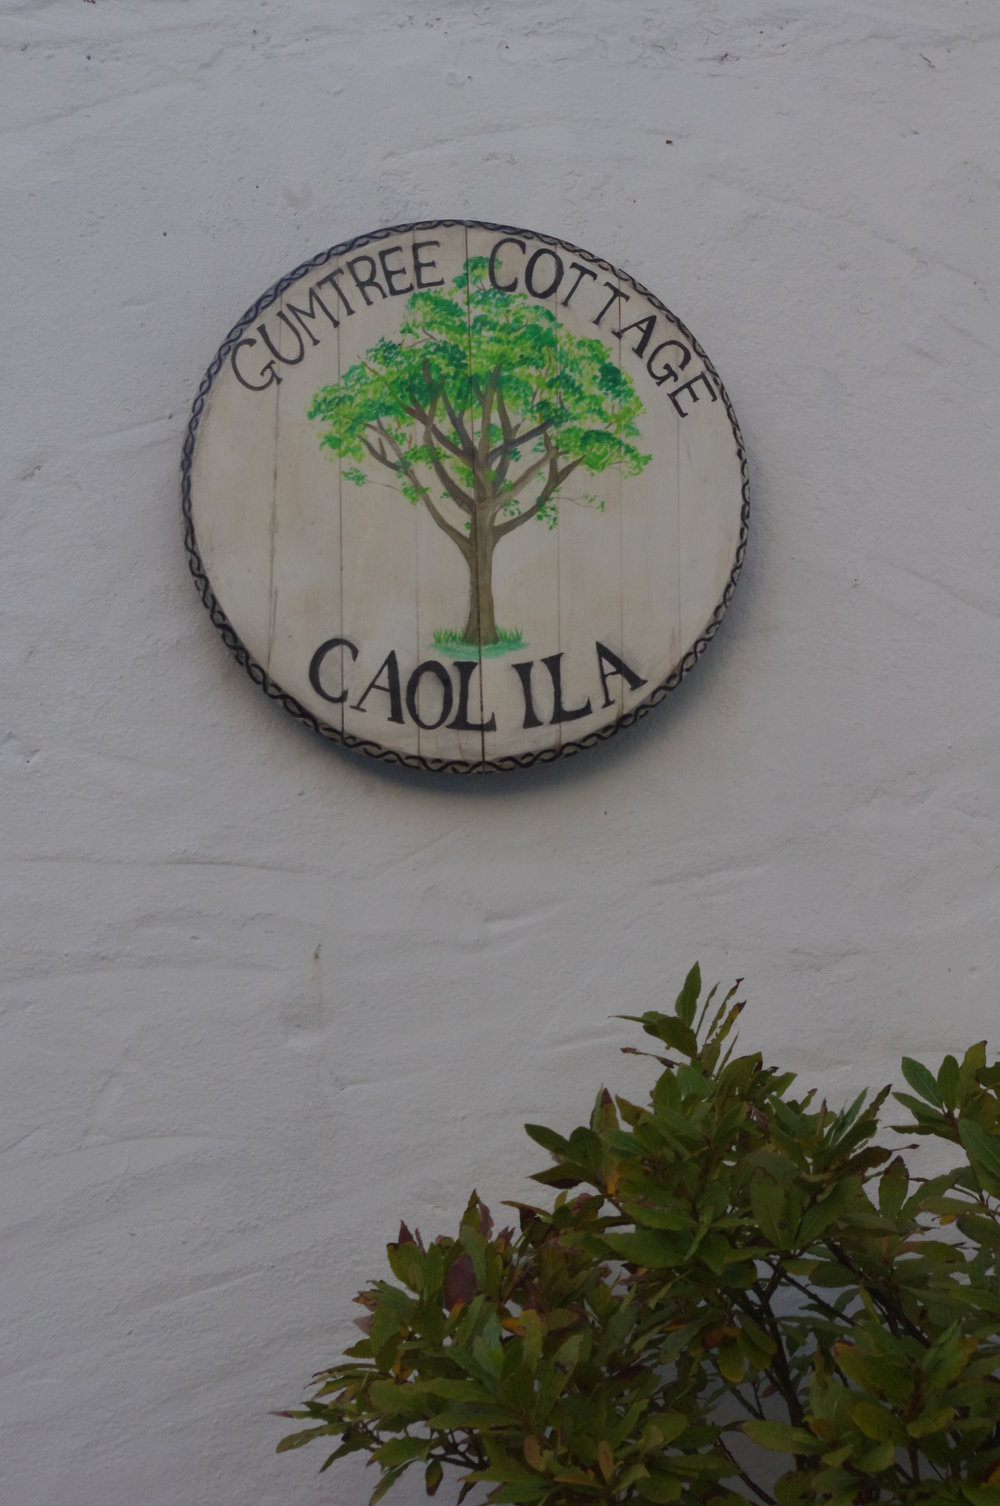 Gumtree Cottage - Sign - Photograph 2.JPG